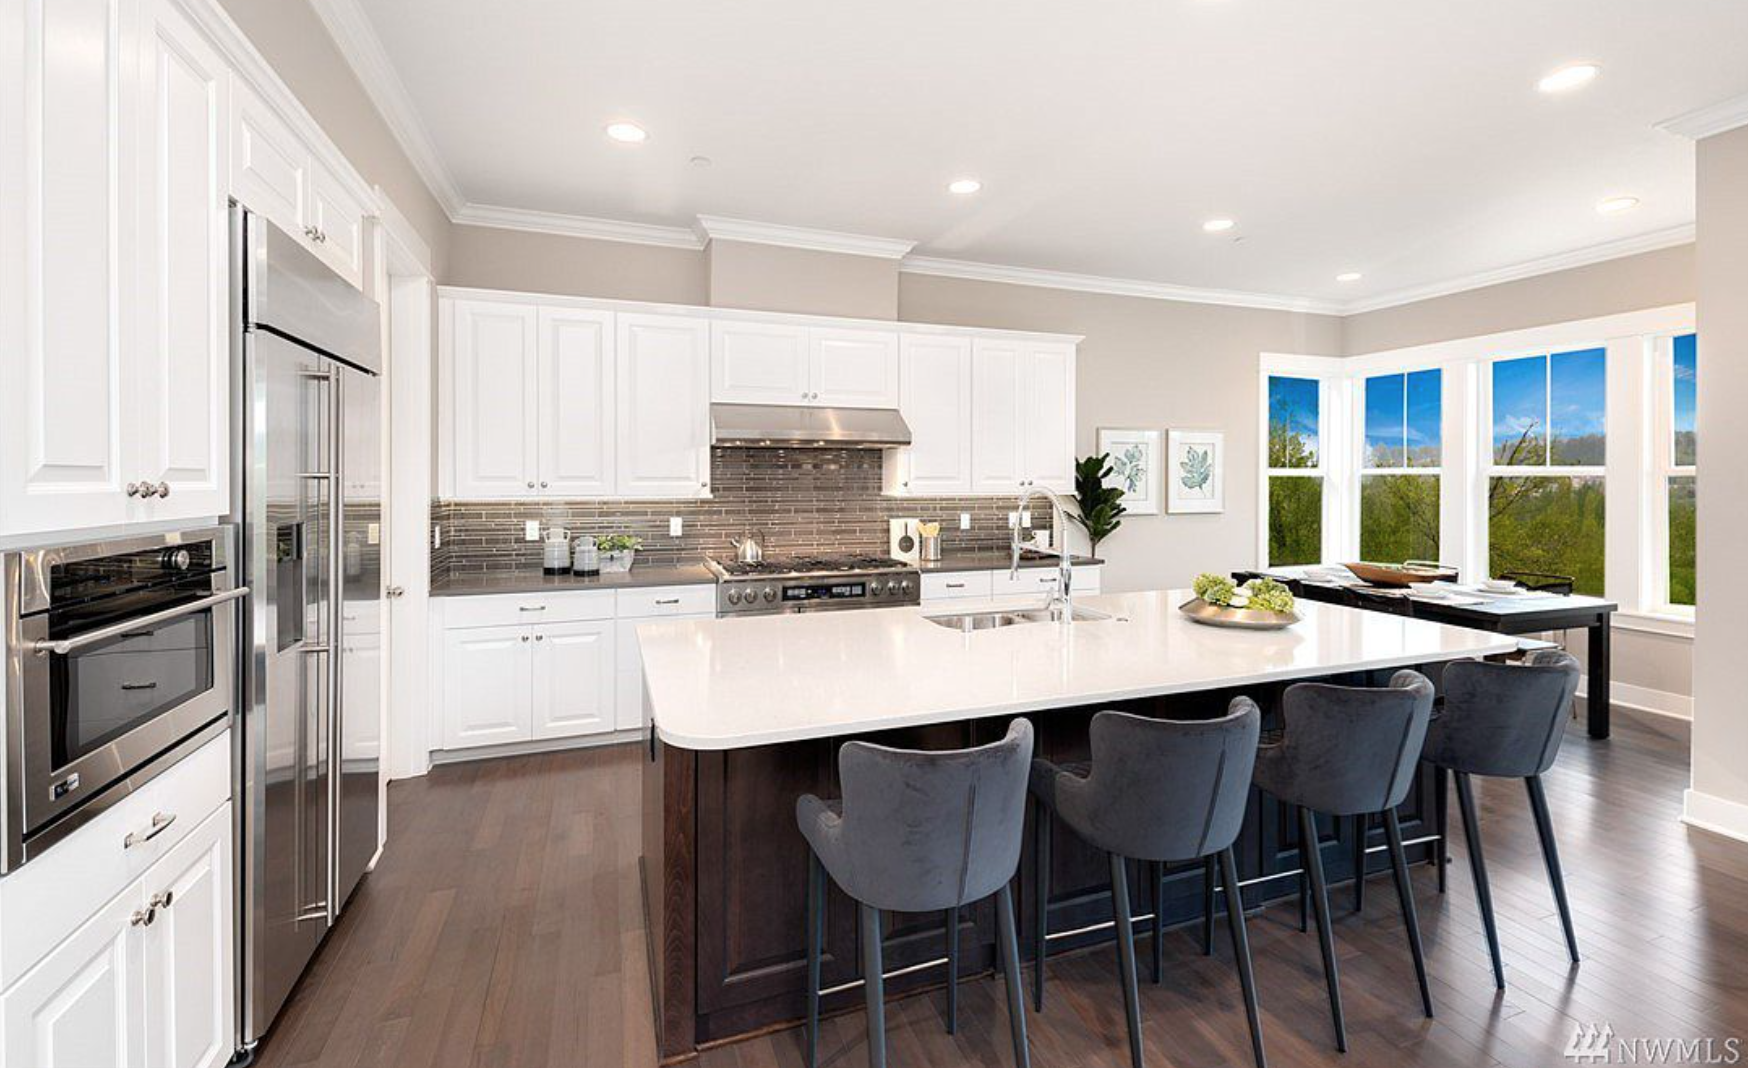 Incredible Chef's kitchen and walk-in pantry complete with a breakfast area and luxe details throughout!